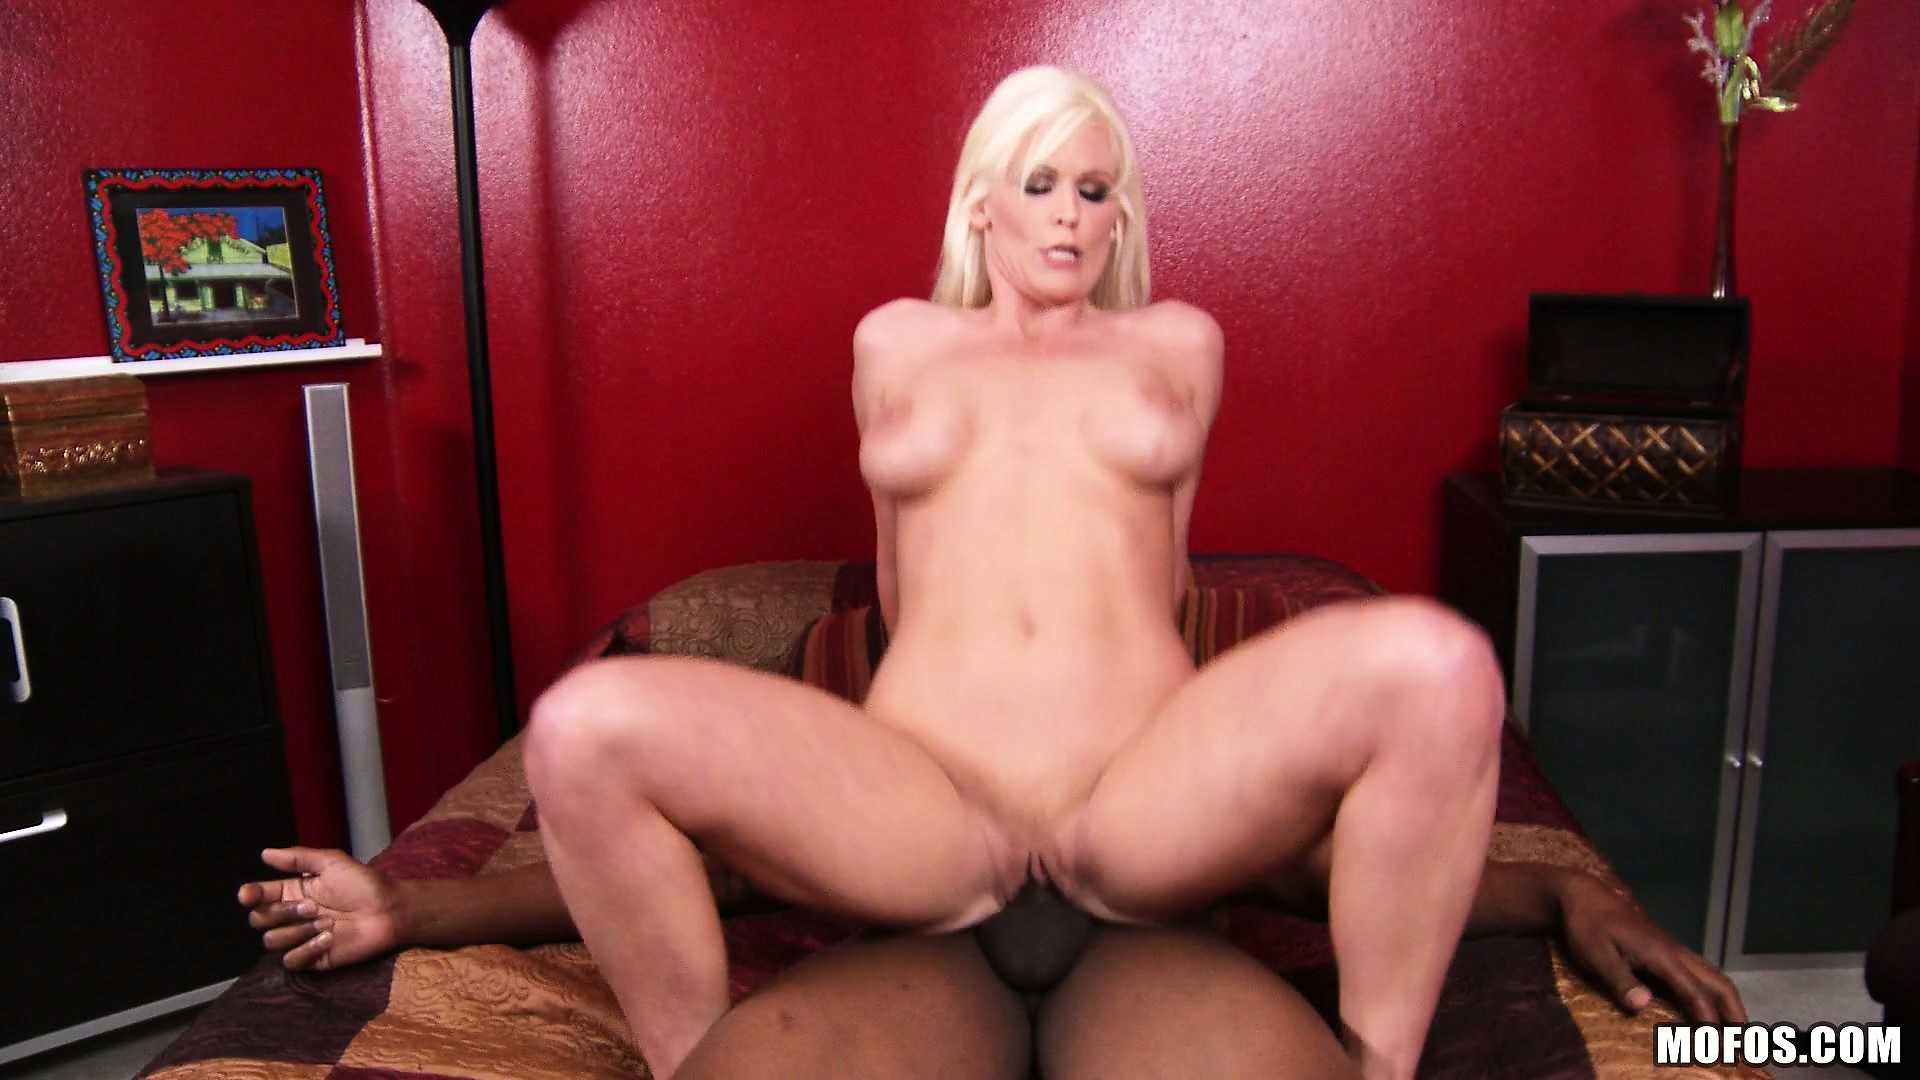 Porno Video of Juicy Blonde Bitch With Fake Tits Rides On A Big Black Schlong